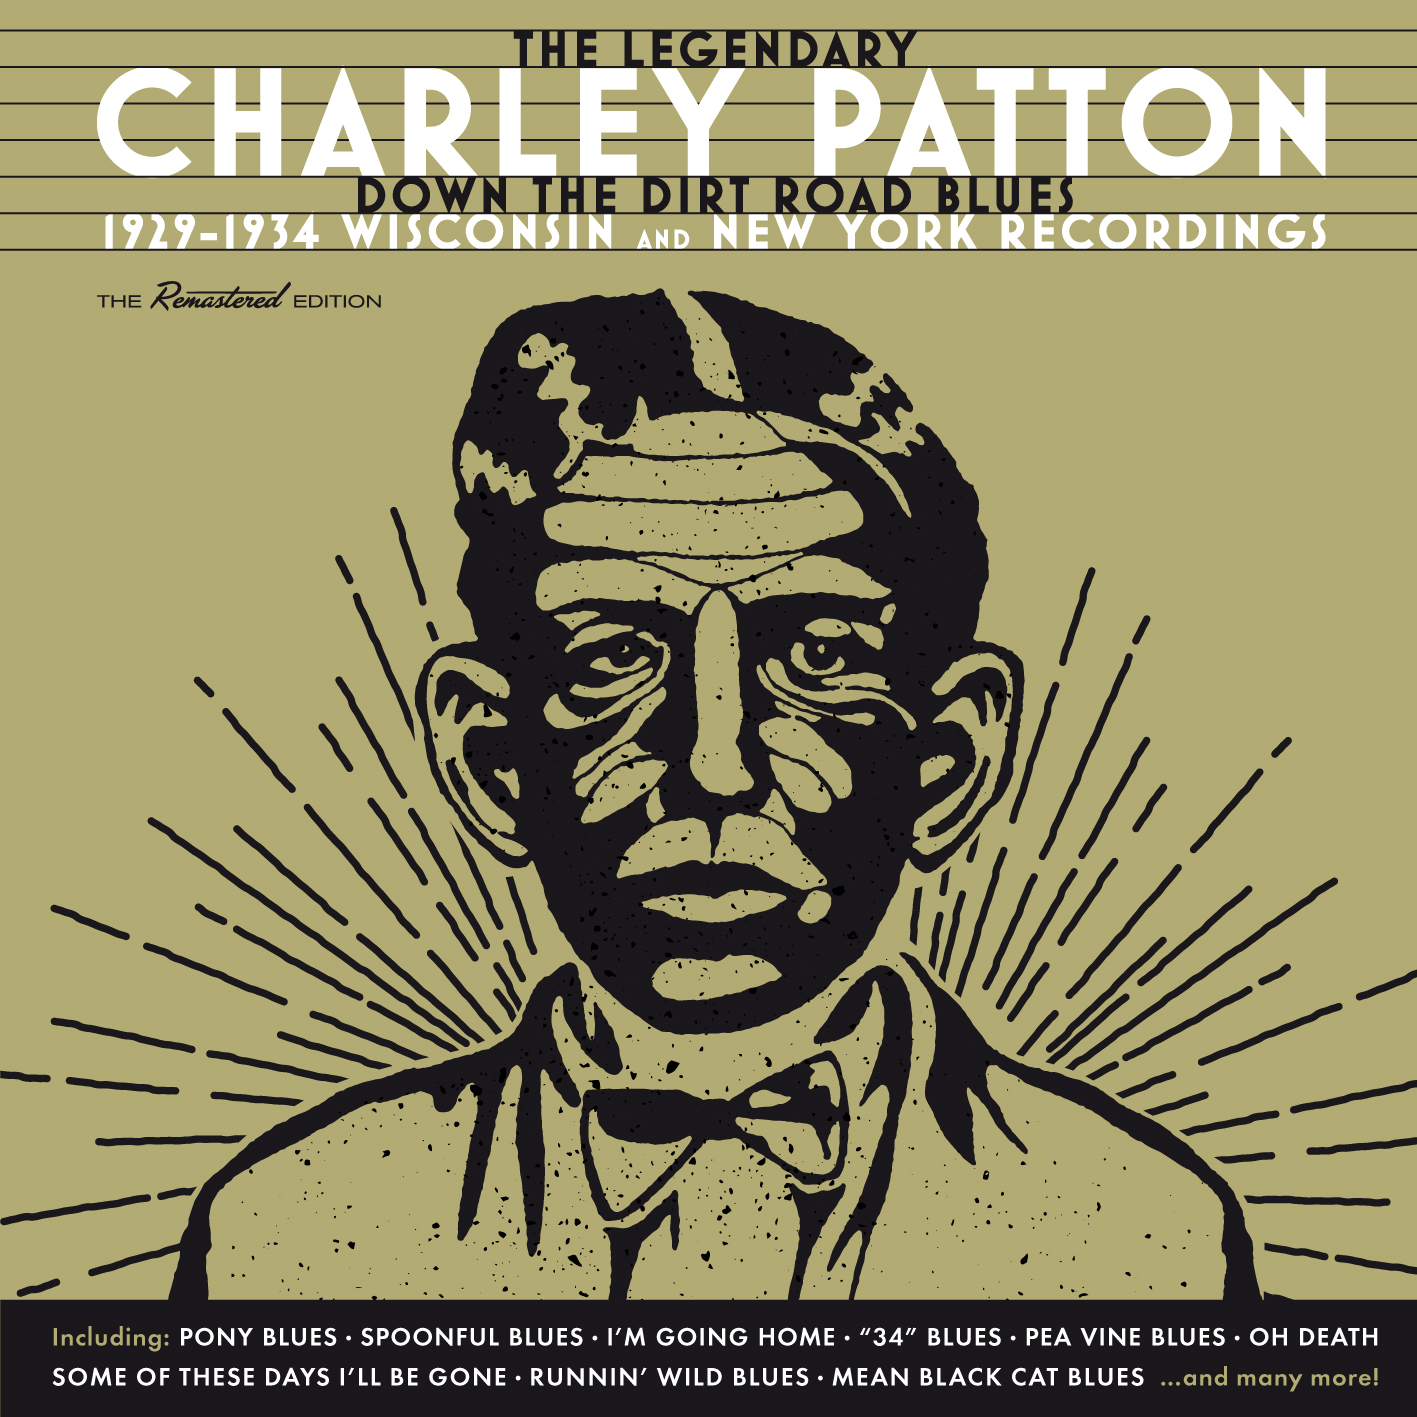 Charley Patton Down At The CD album cover for Dirt Road Blues 1929-1934